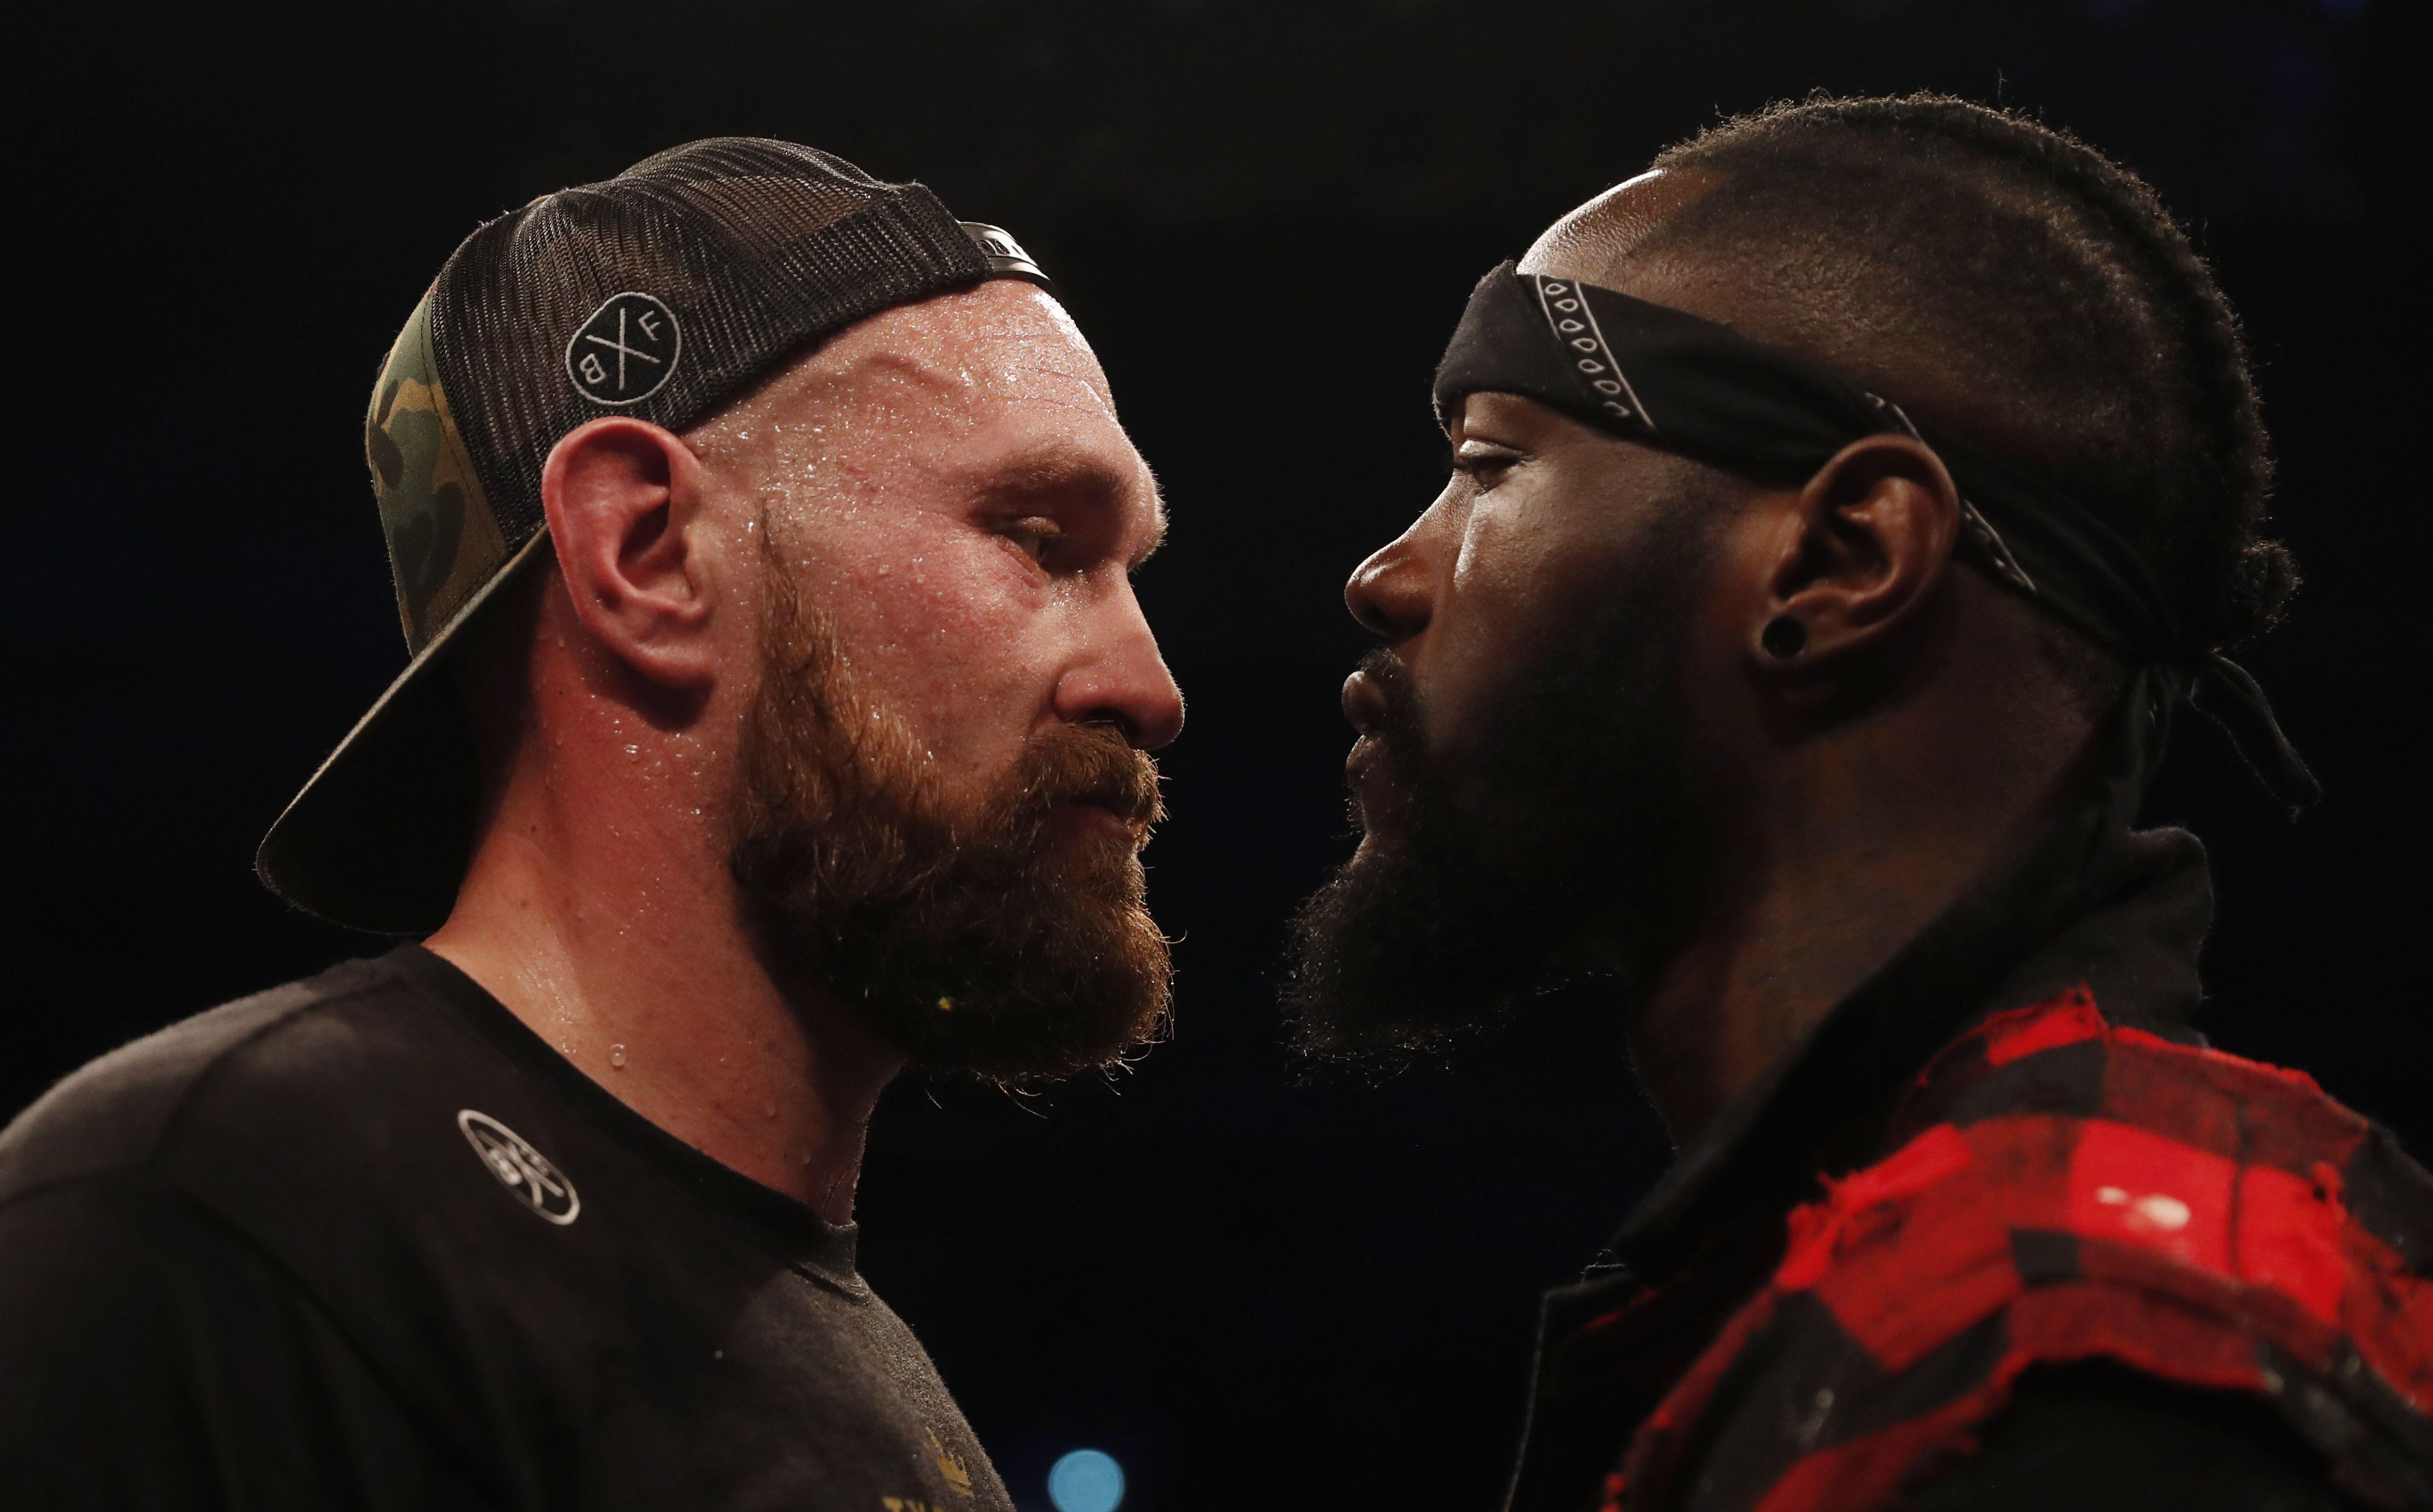 Tyson Fury and Deontay Wilder stated their intentions to scrap later on in the year